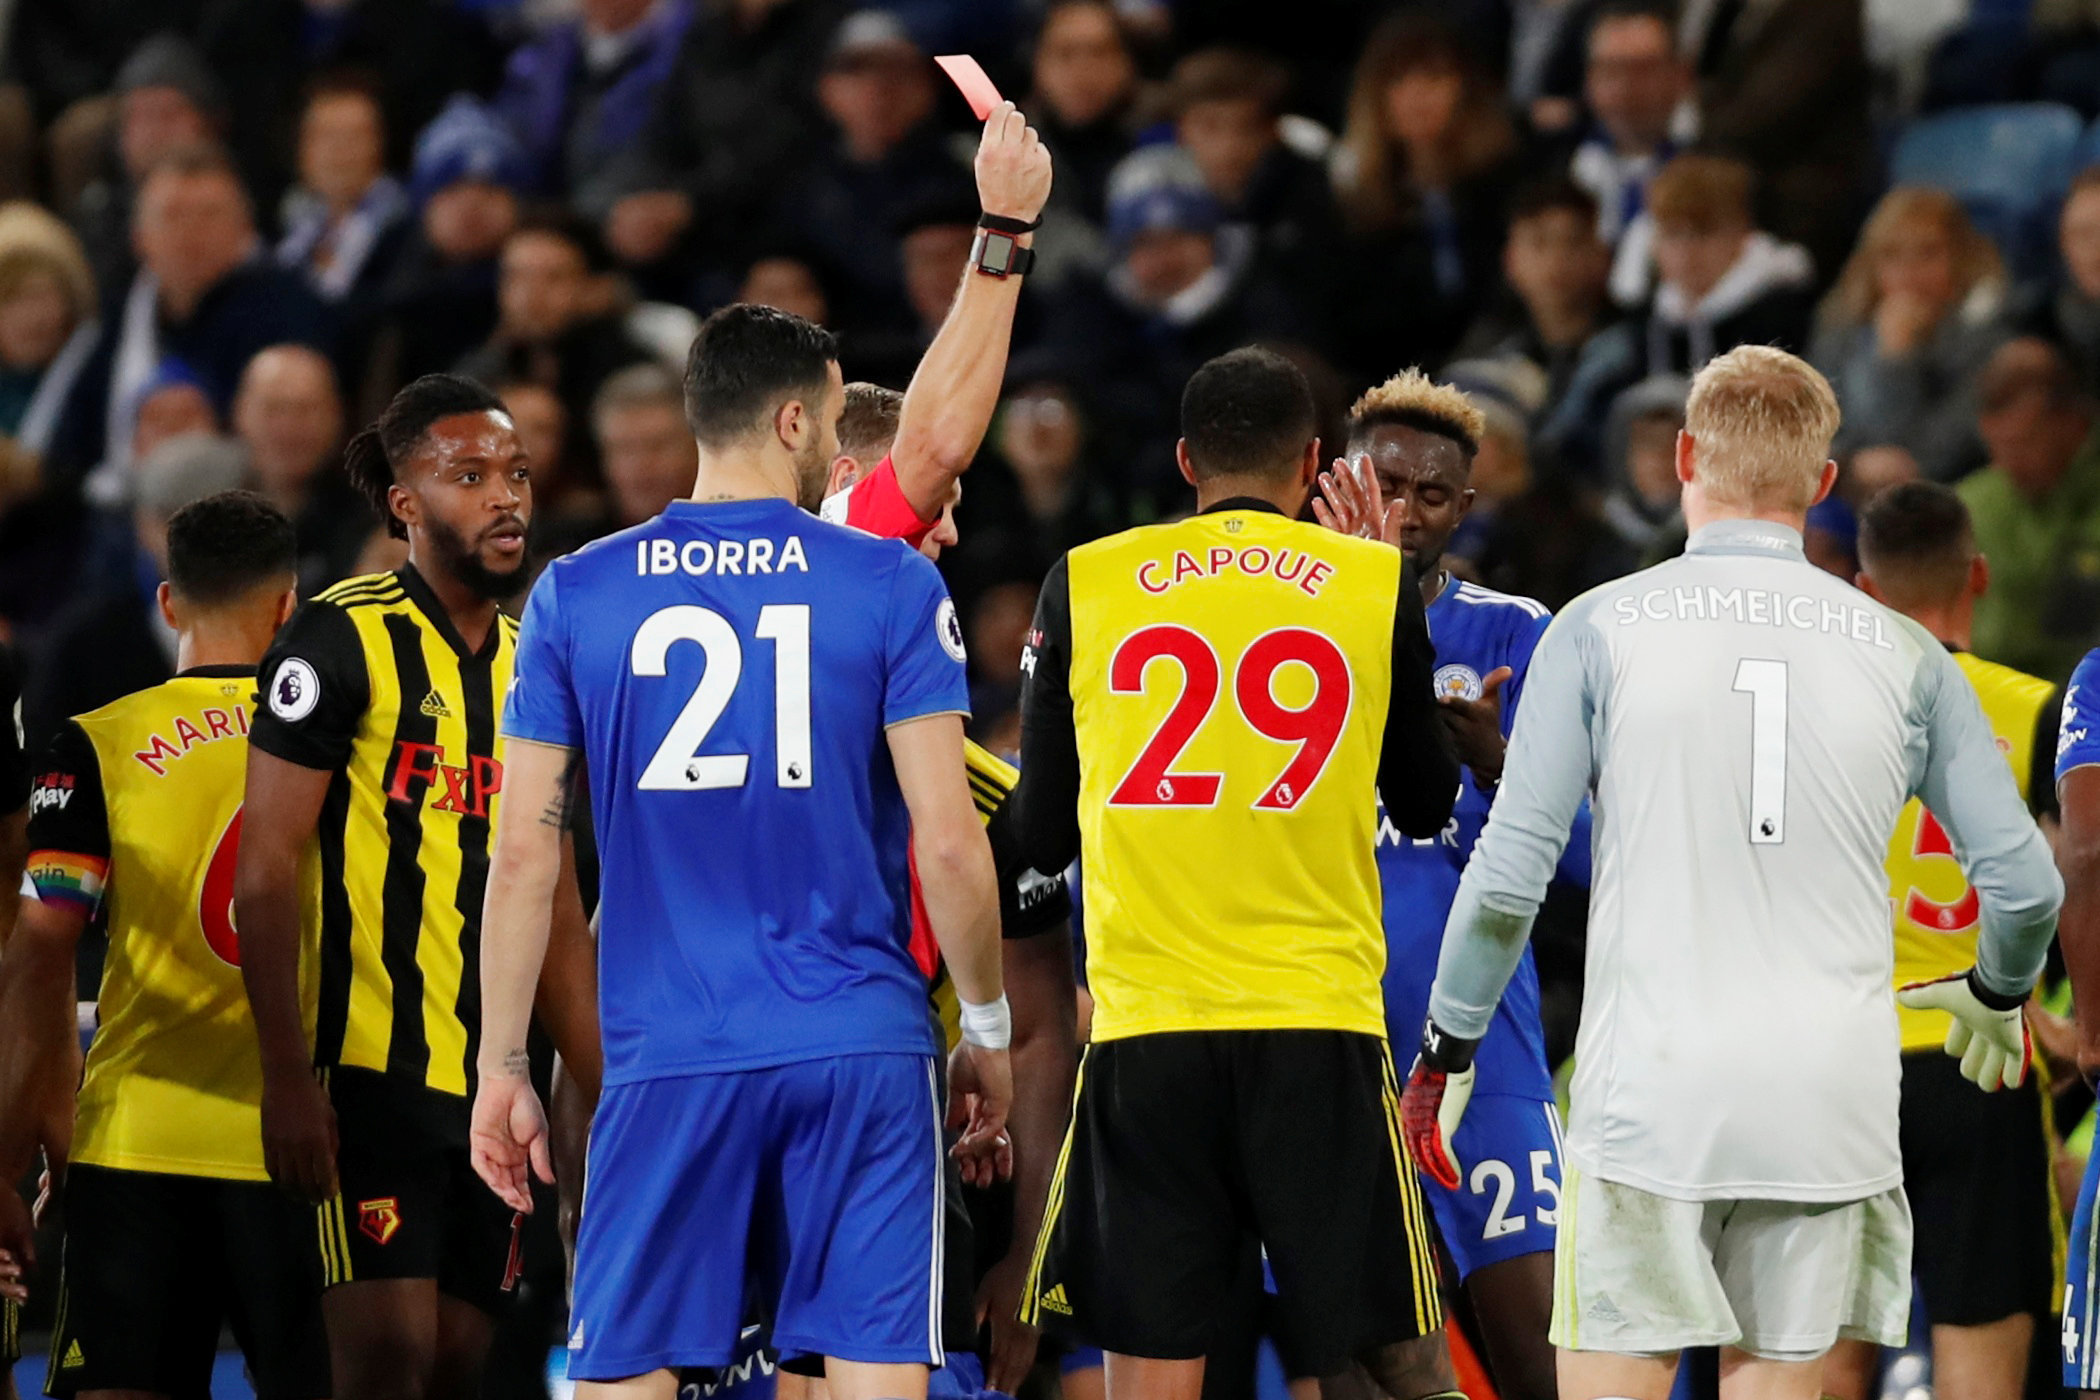 Hornets to appeal once more as Capoue ban is upheld